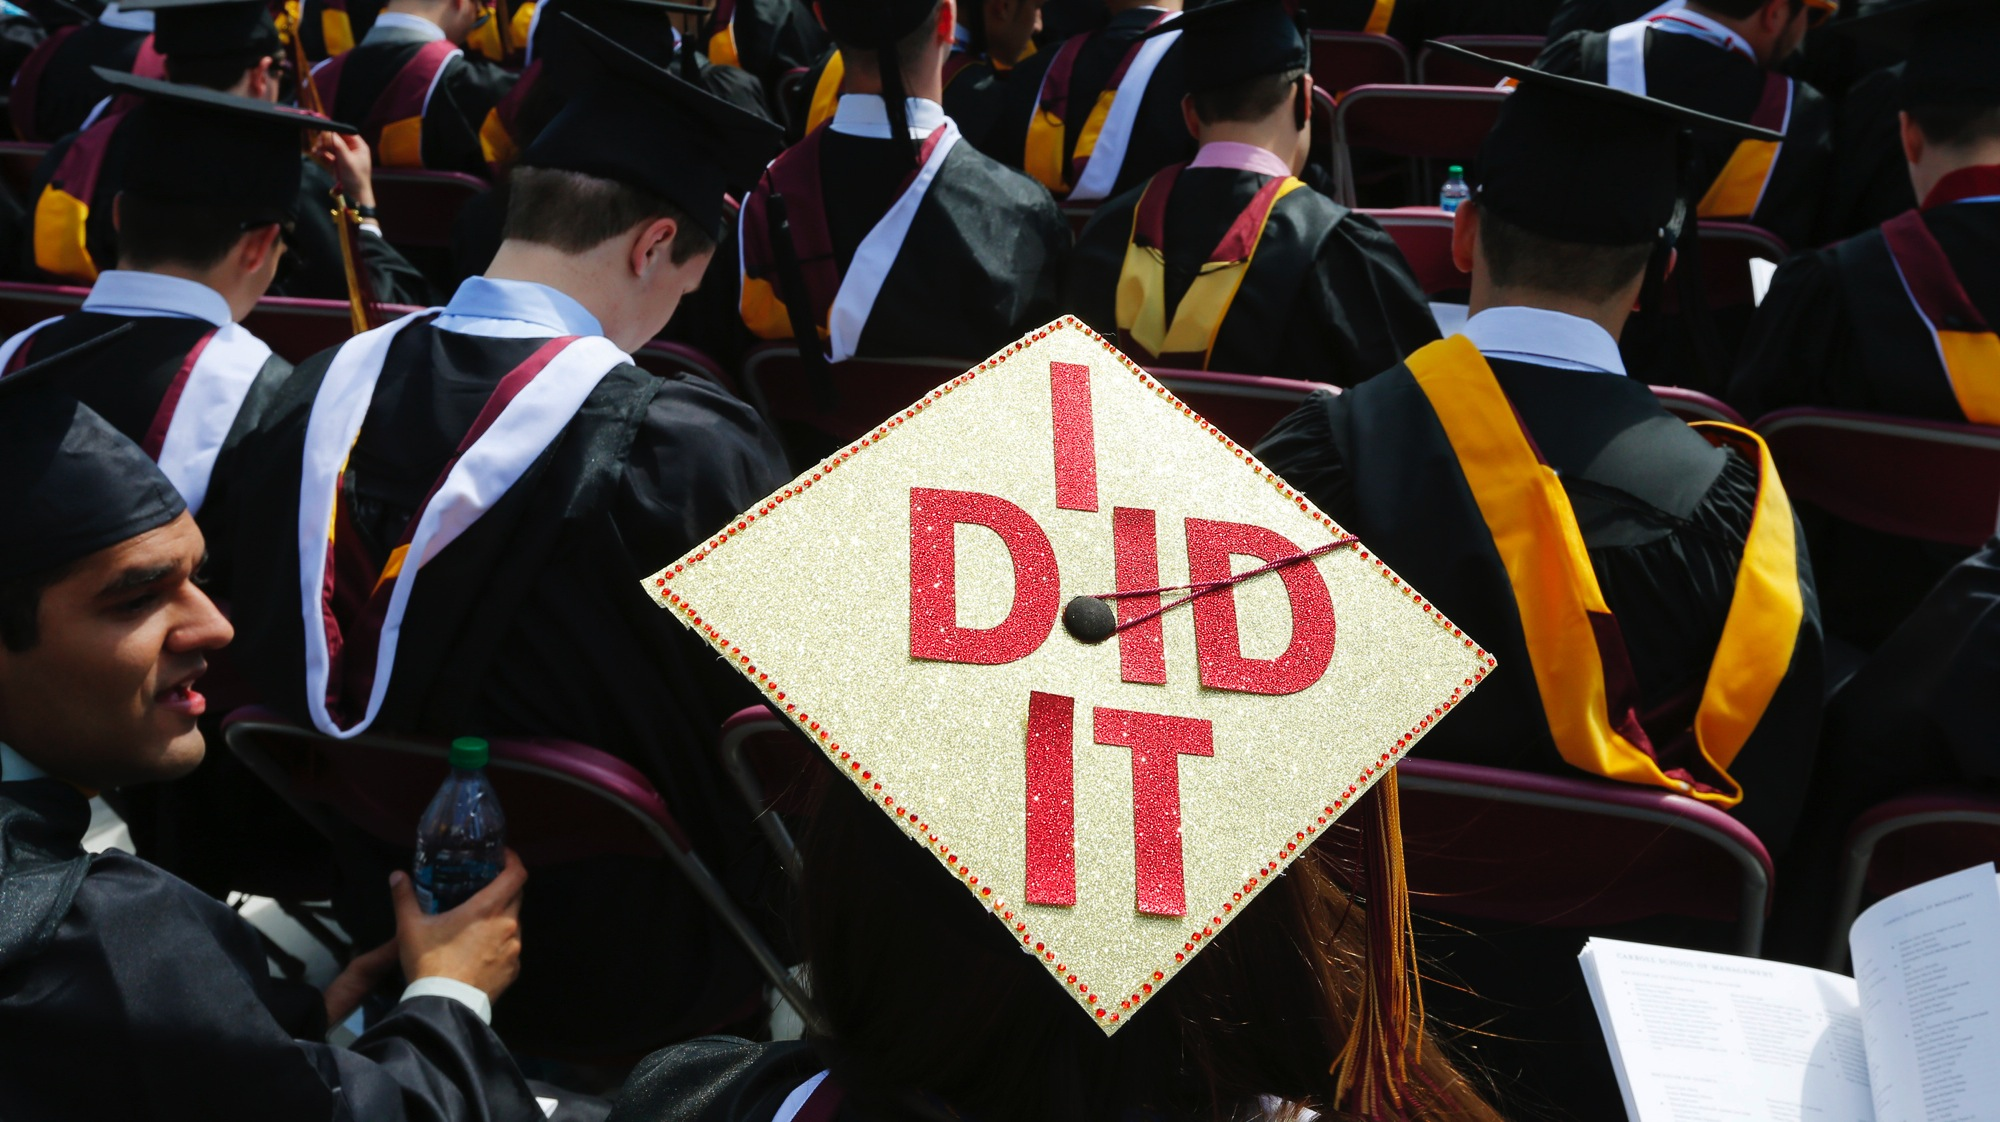 """Graduating student Katherine Thomas has """"I Did It"""" written on her mortar board during Commencement Exercises at Boston College in Boston, Massachusetts May 19, 2014. REUTERS/Brian Snyder (UNITED STATES - Tags: EDUCATION SOCIETY)"""